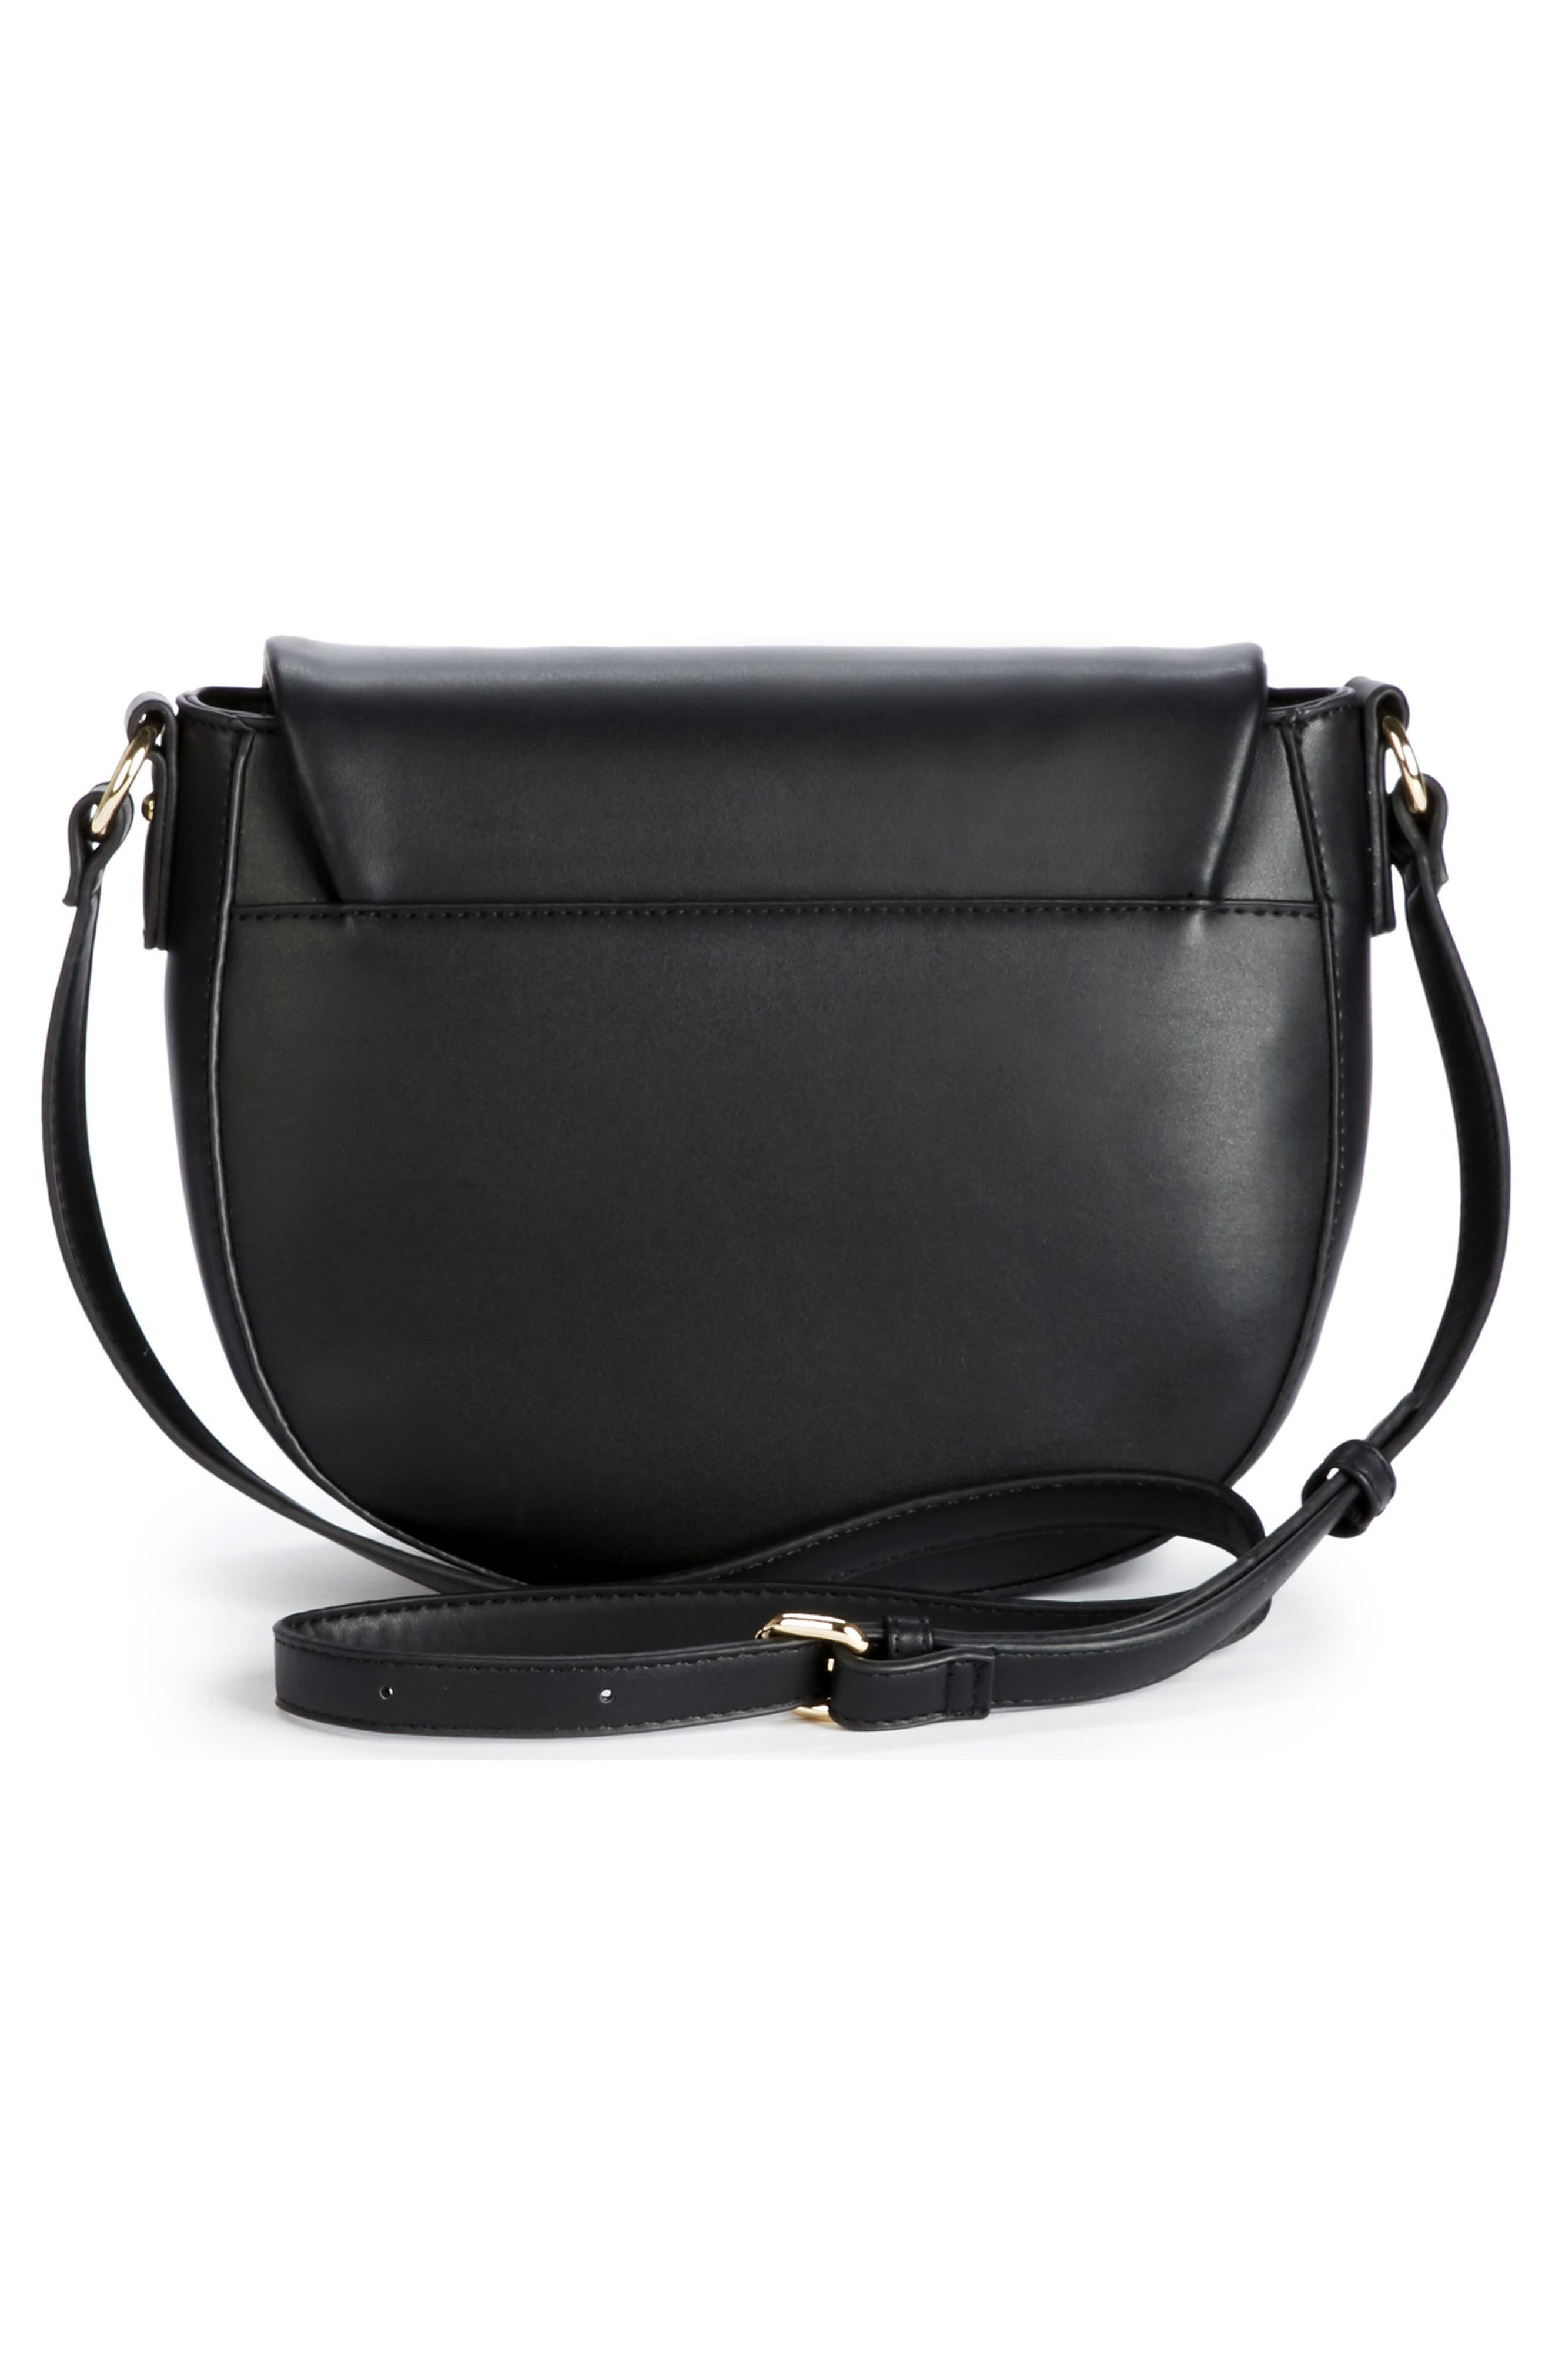 Adden Faux Leather Crossbody Bag,                             Alternate thumbnail 3, color,                             001